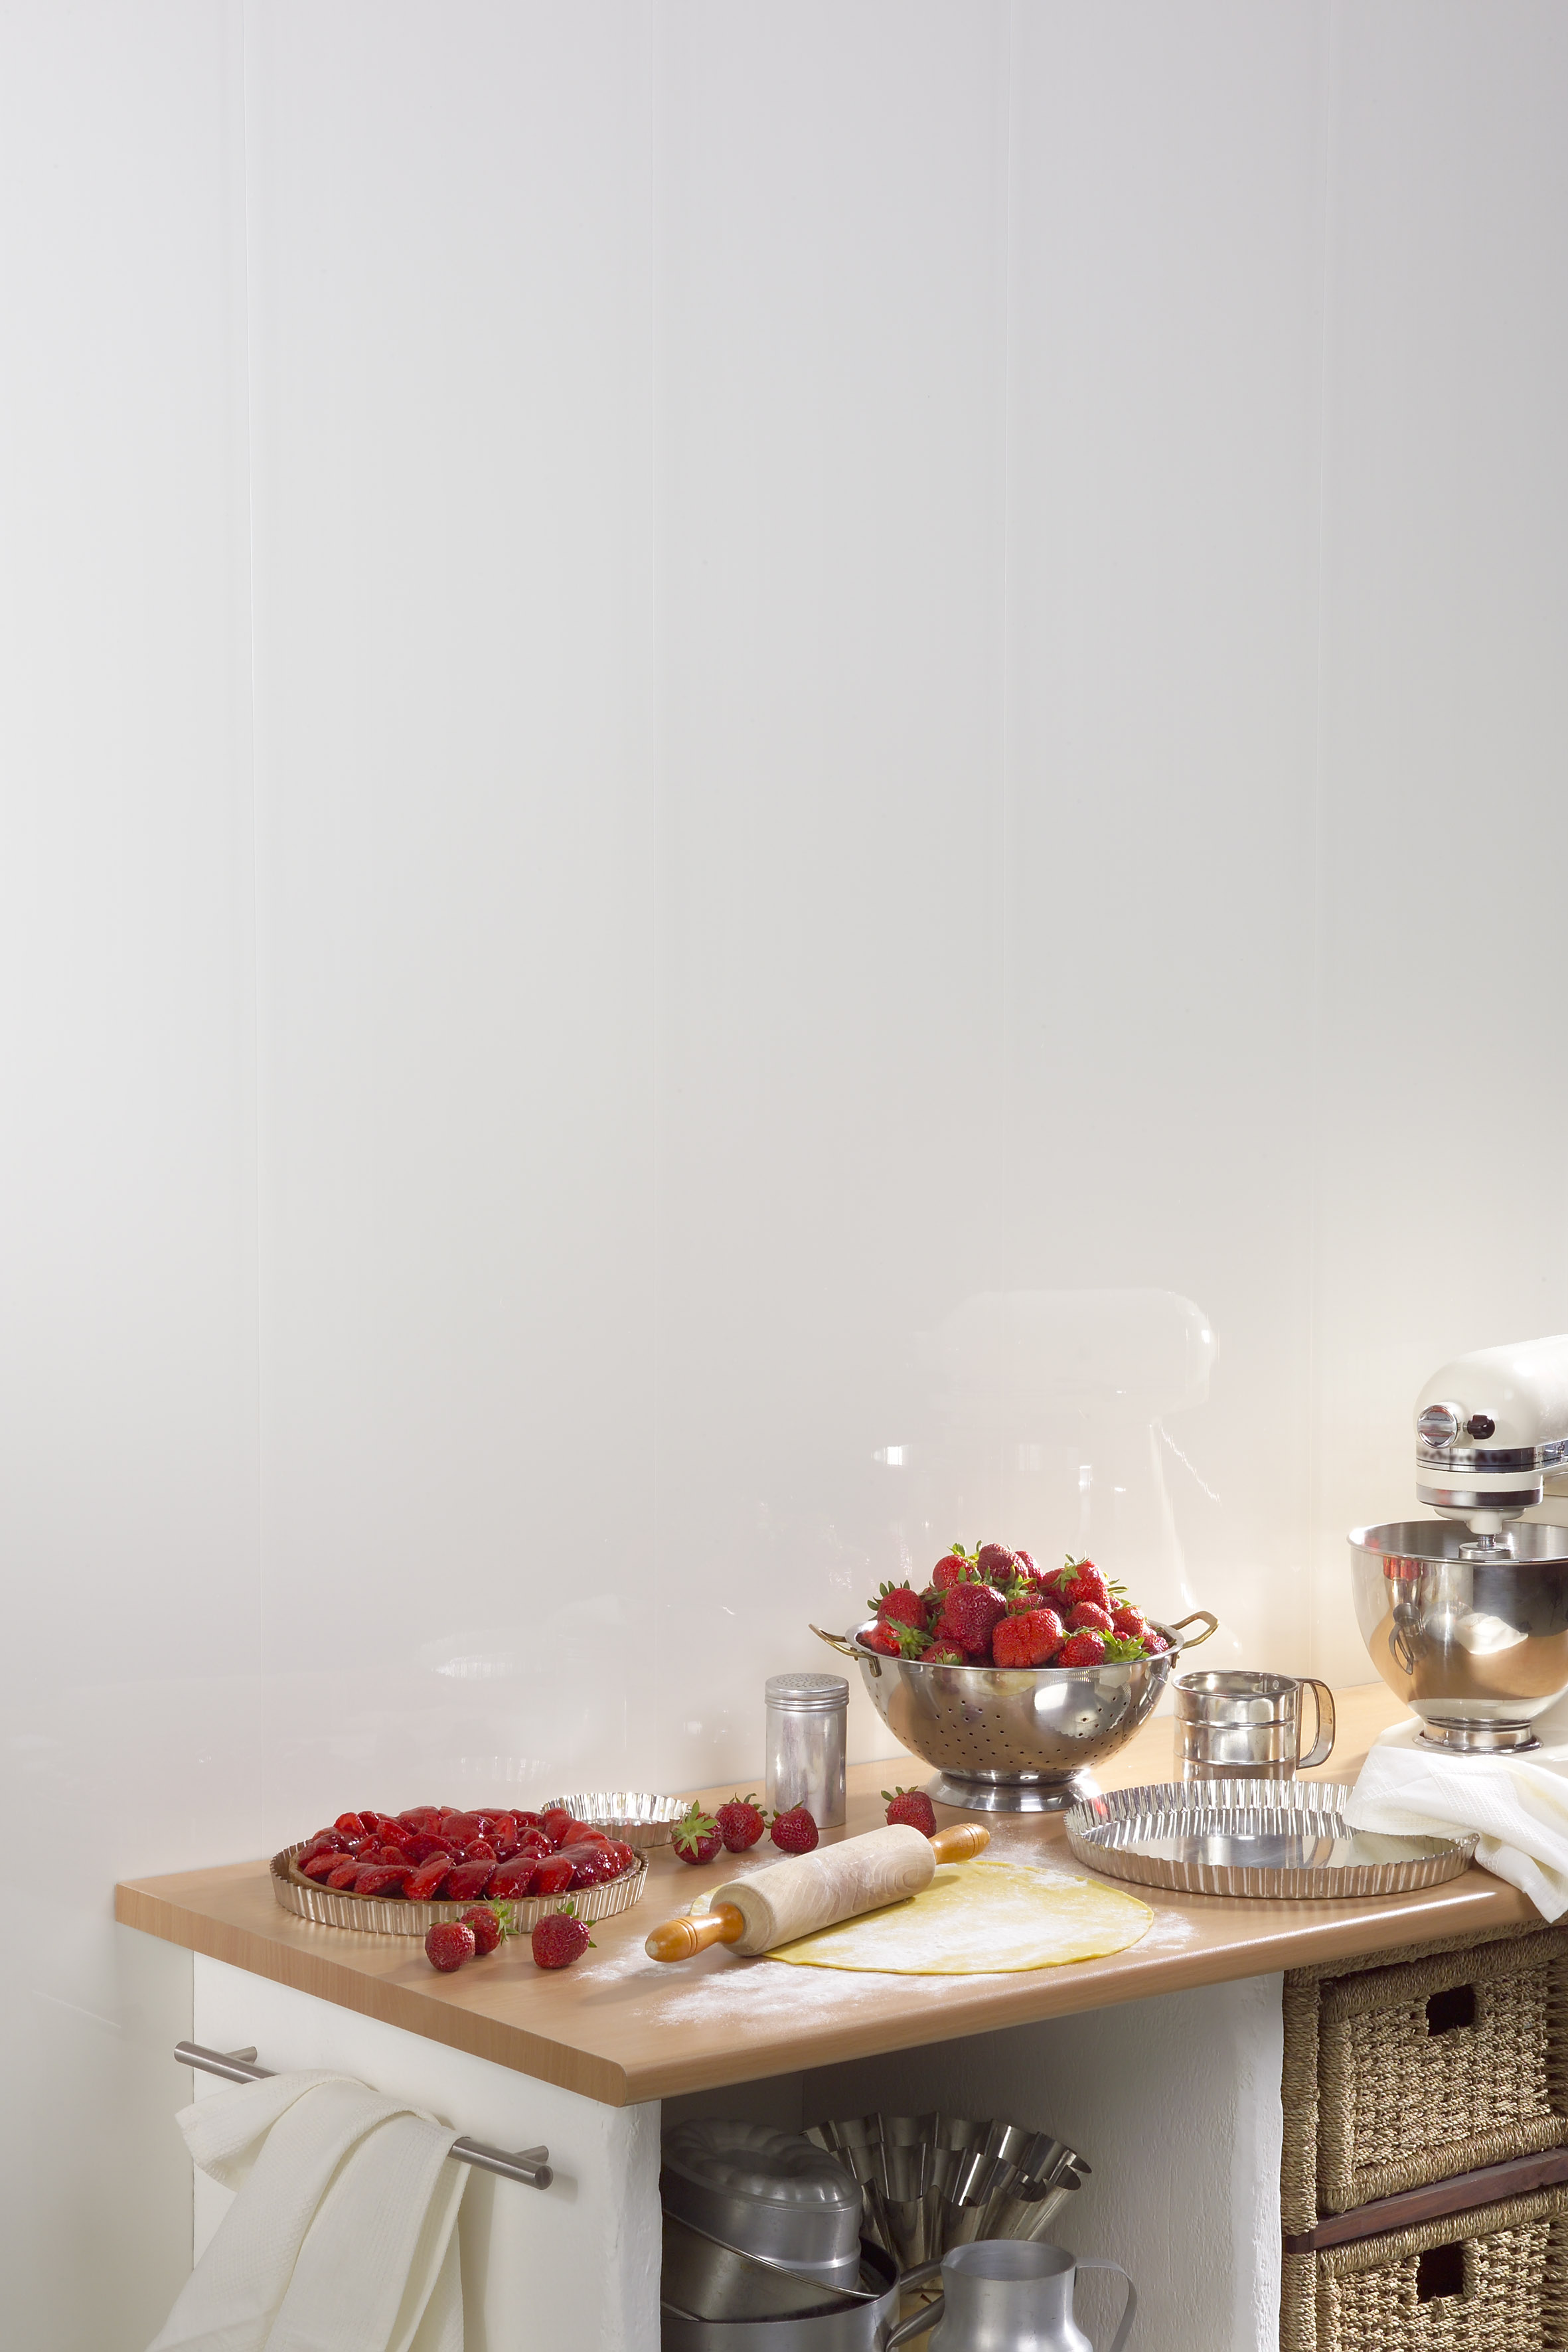 kitchen wall panel - Applications - Where Can Our Panels Be Used?